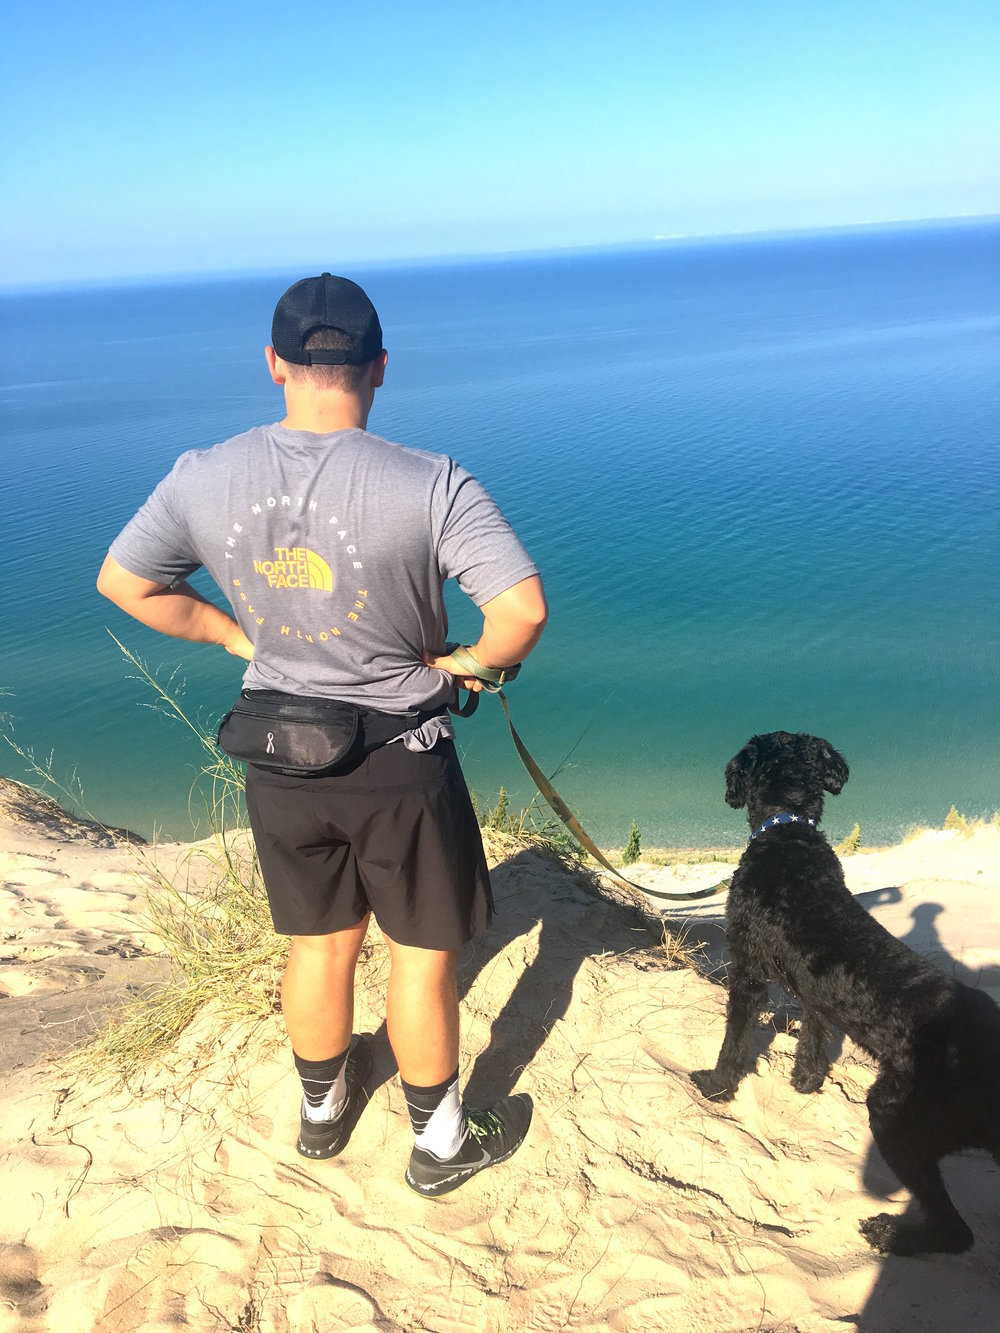 We also LOVE to find new trails that lead to amazing views. Michigan is amazing because you can hike dunes and woods in the same hike. I love the variety of scenery here!